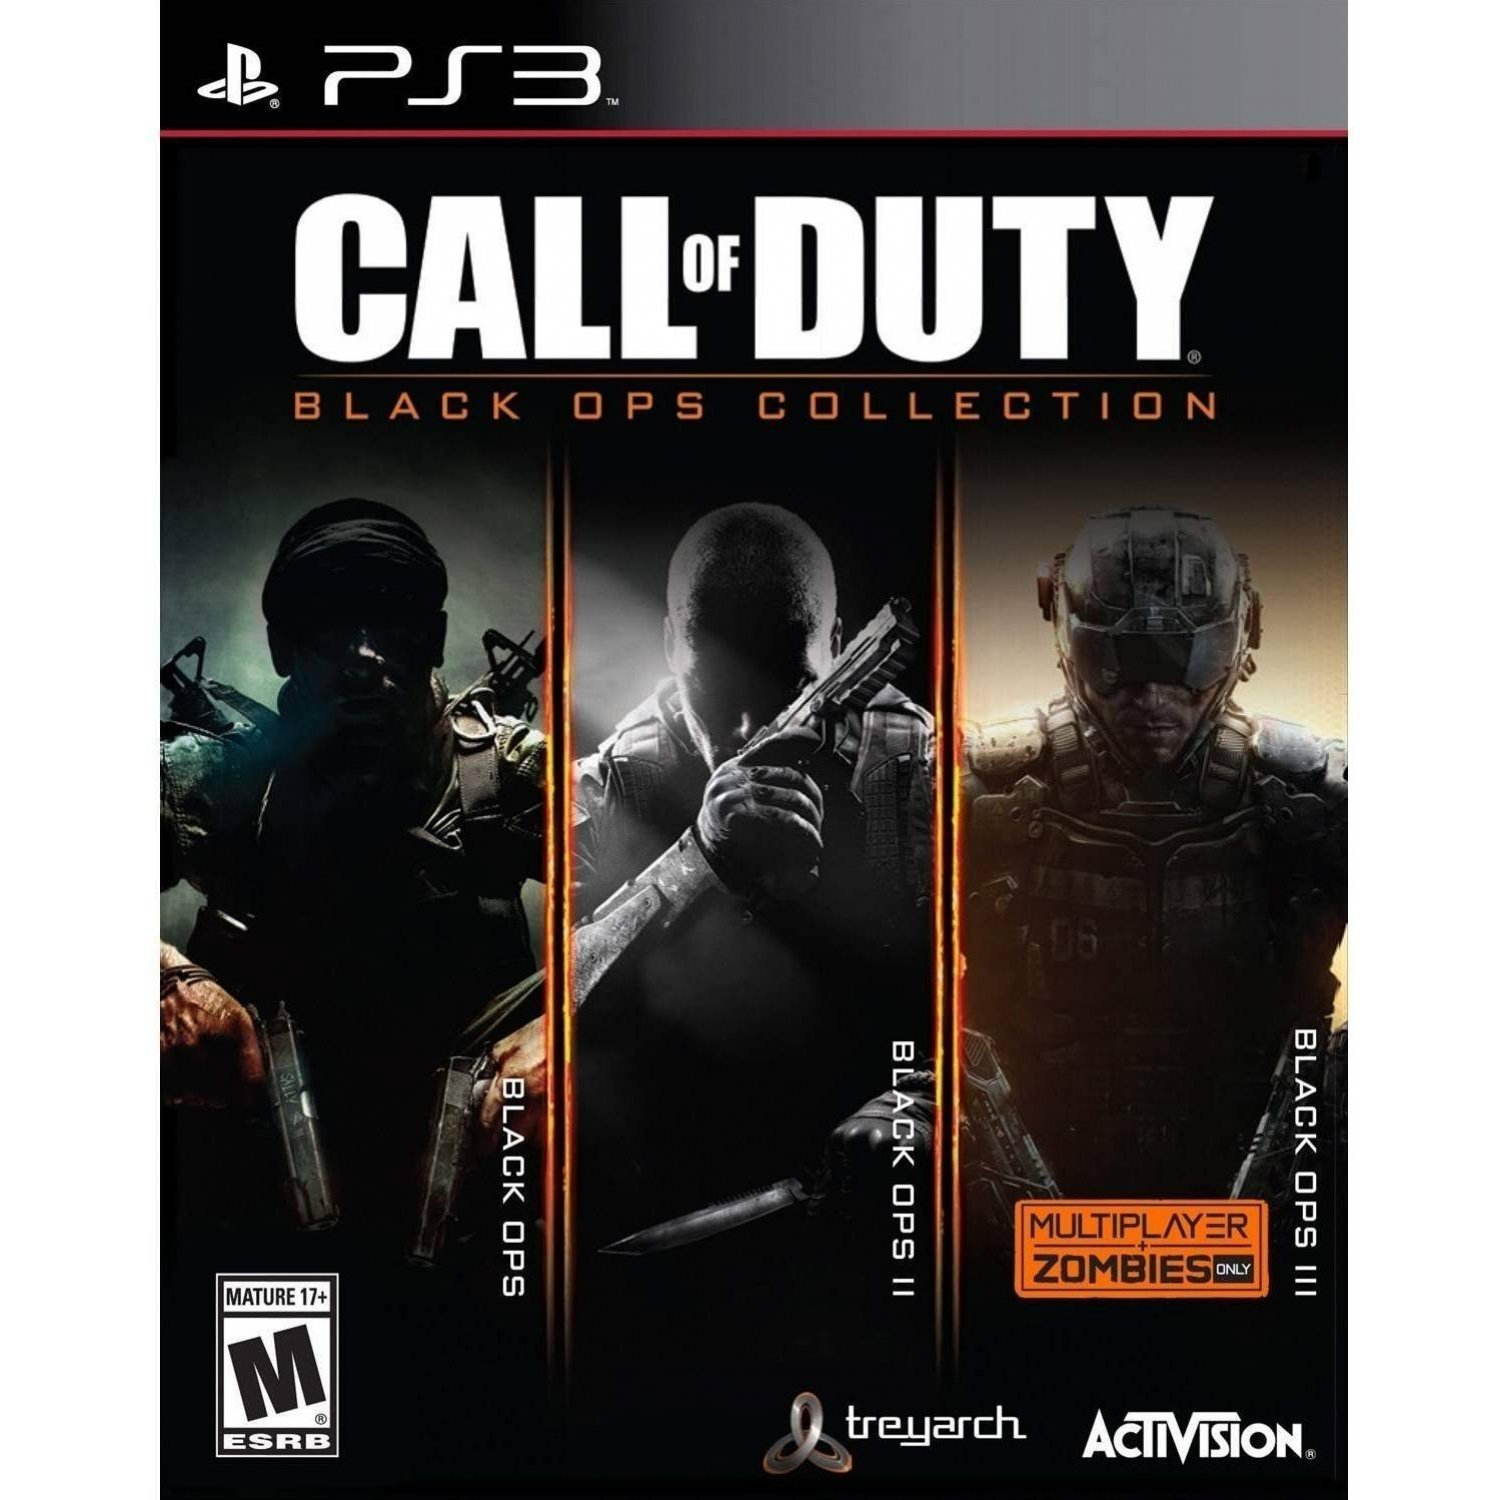 call-of-duty-black-ops-mature-manky-and-girl-sex